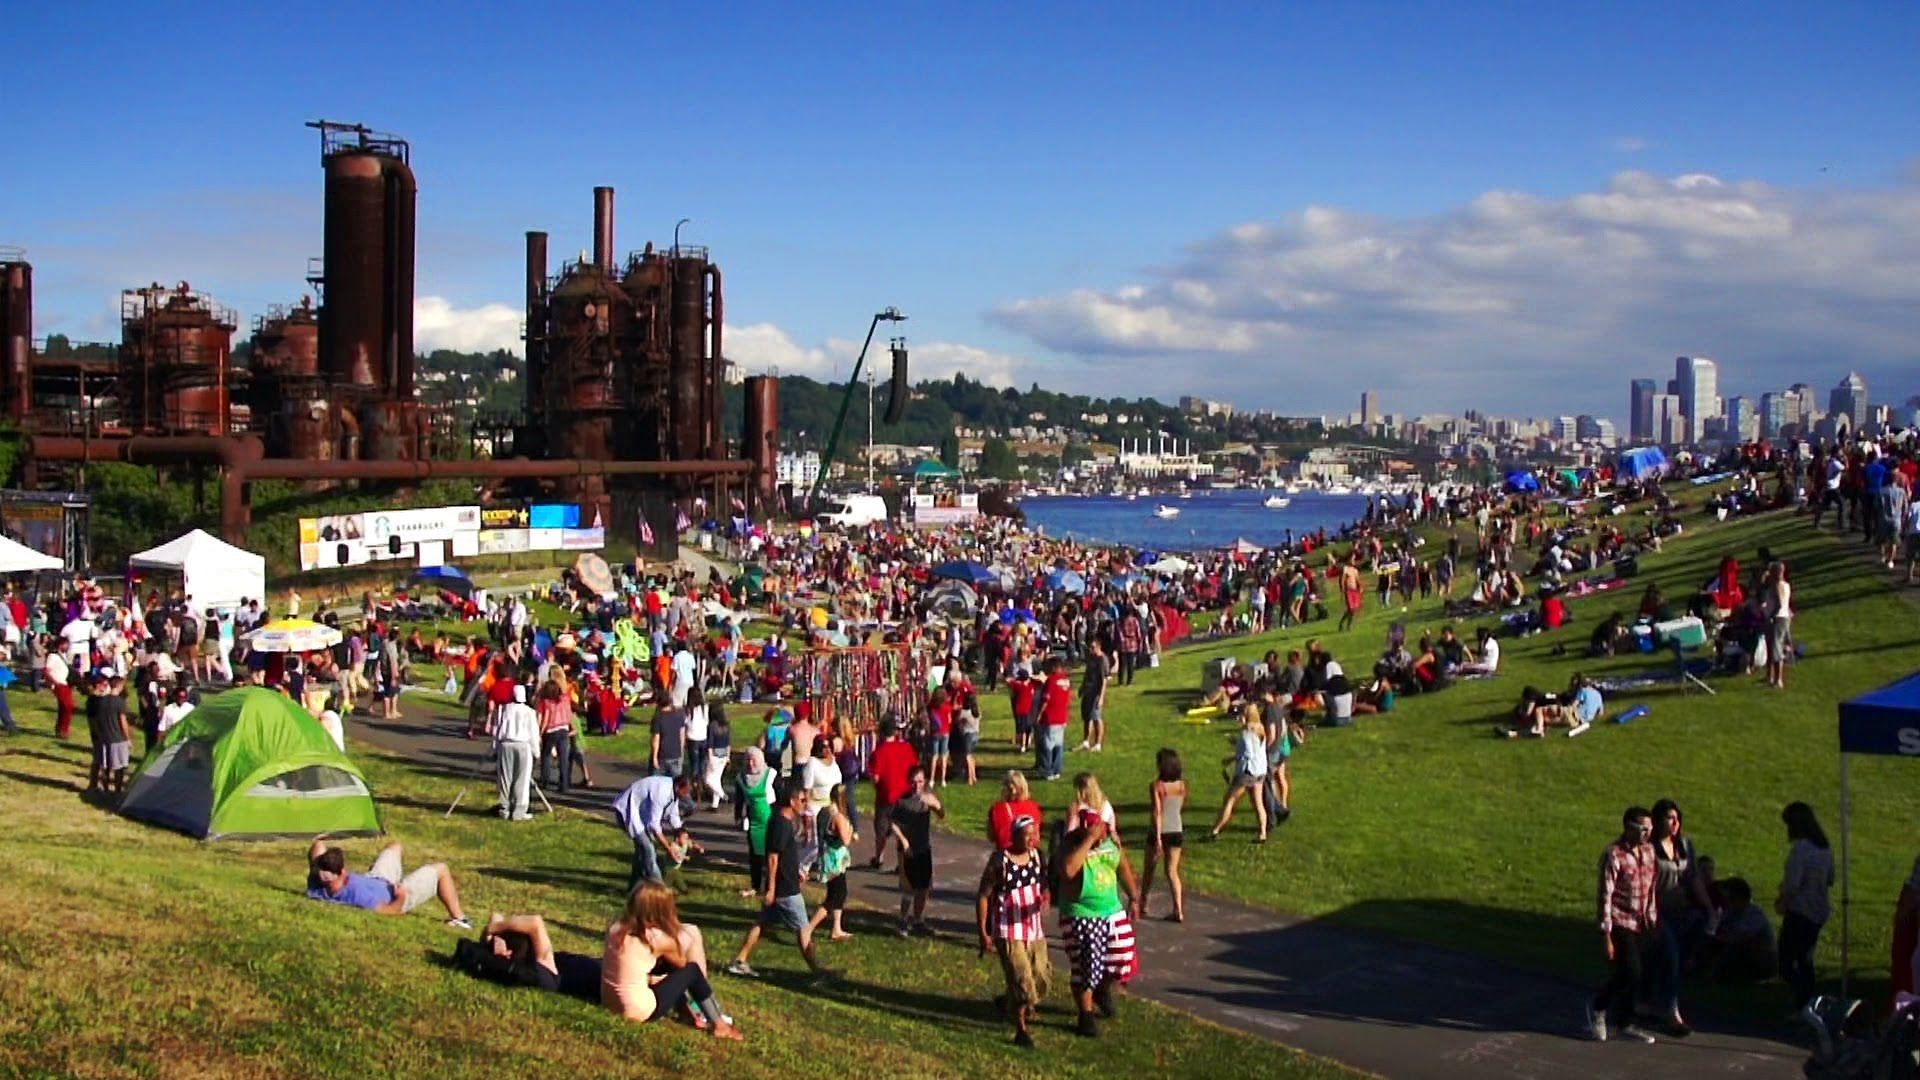 Seattle Map Lake Union%0A In Seattle people gather around Lake Union for spectacular fireworks  Gas  Works Park draws a lot of visitors during